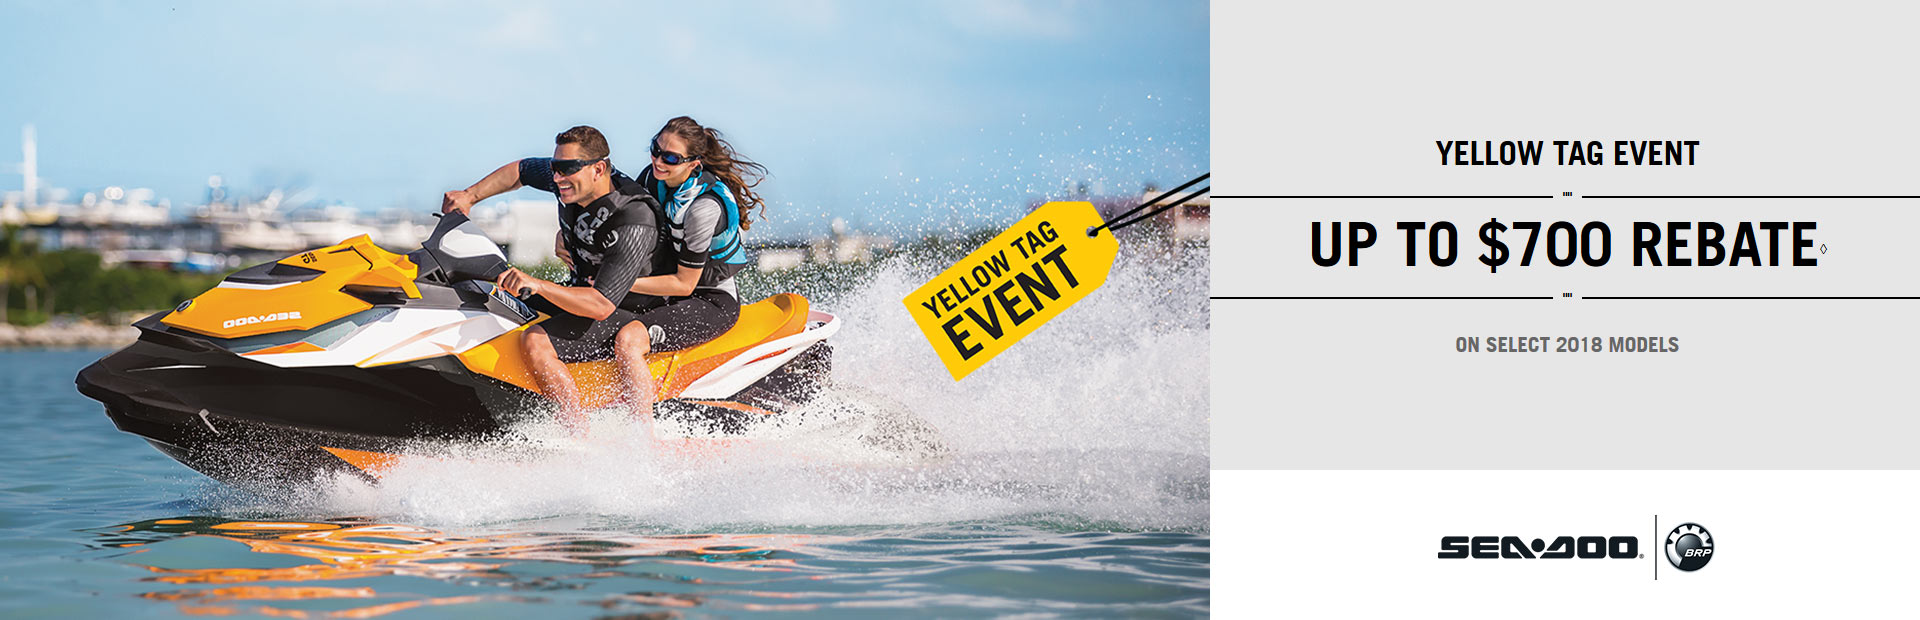 Sea-Doo: Yellow Tag Event